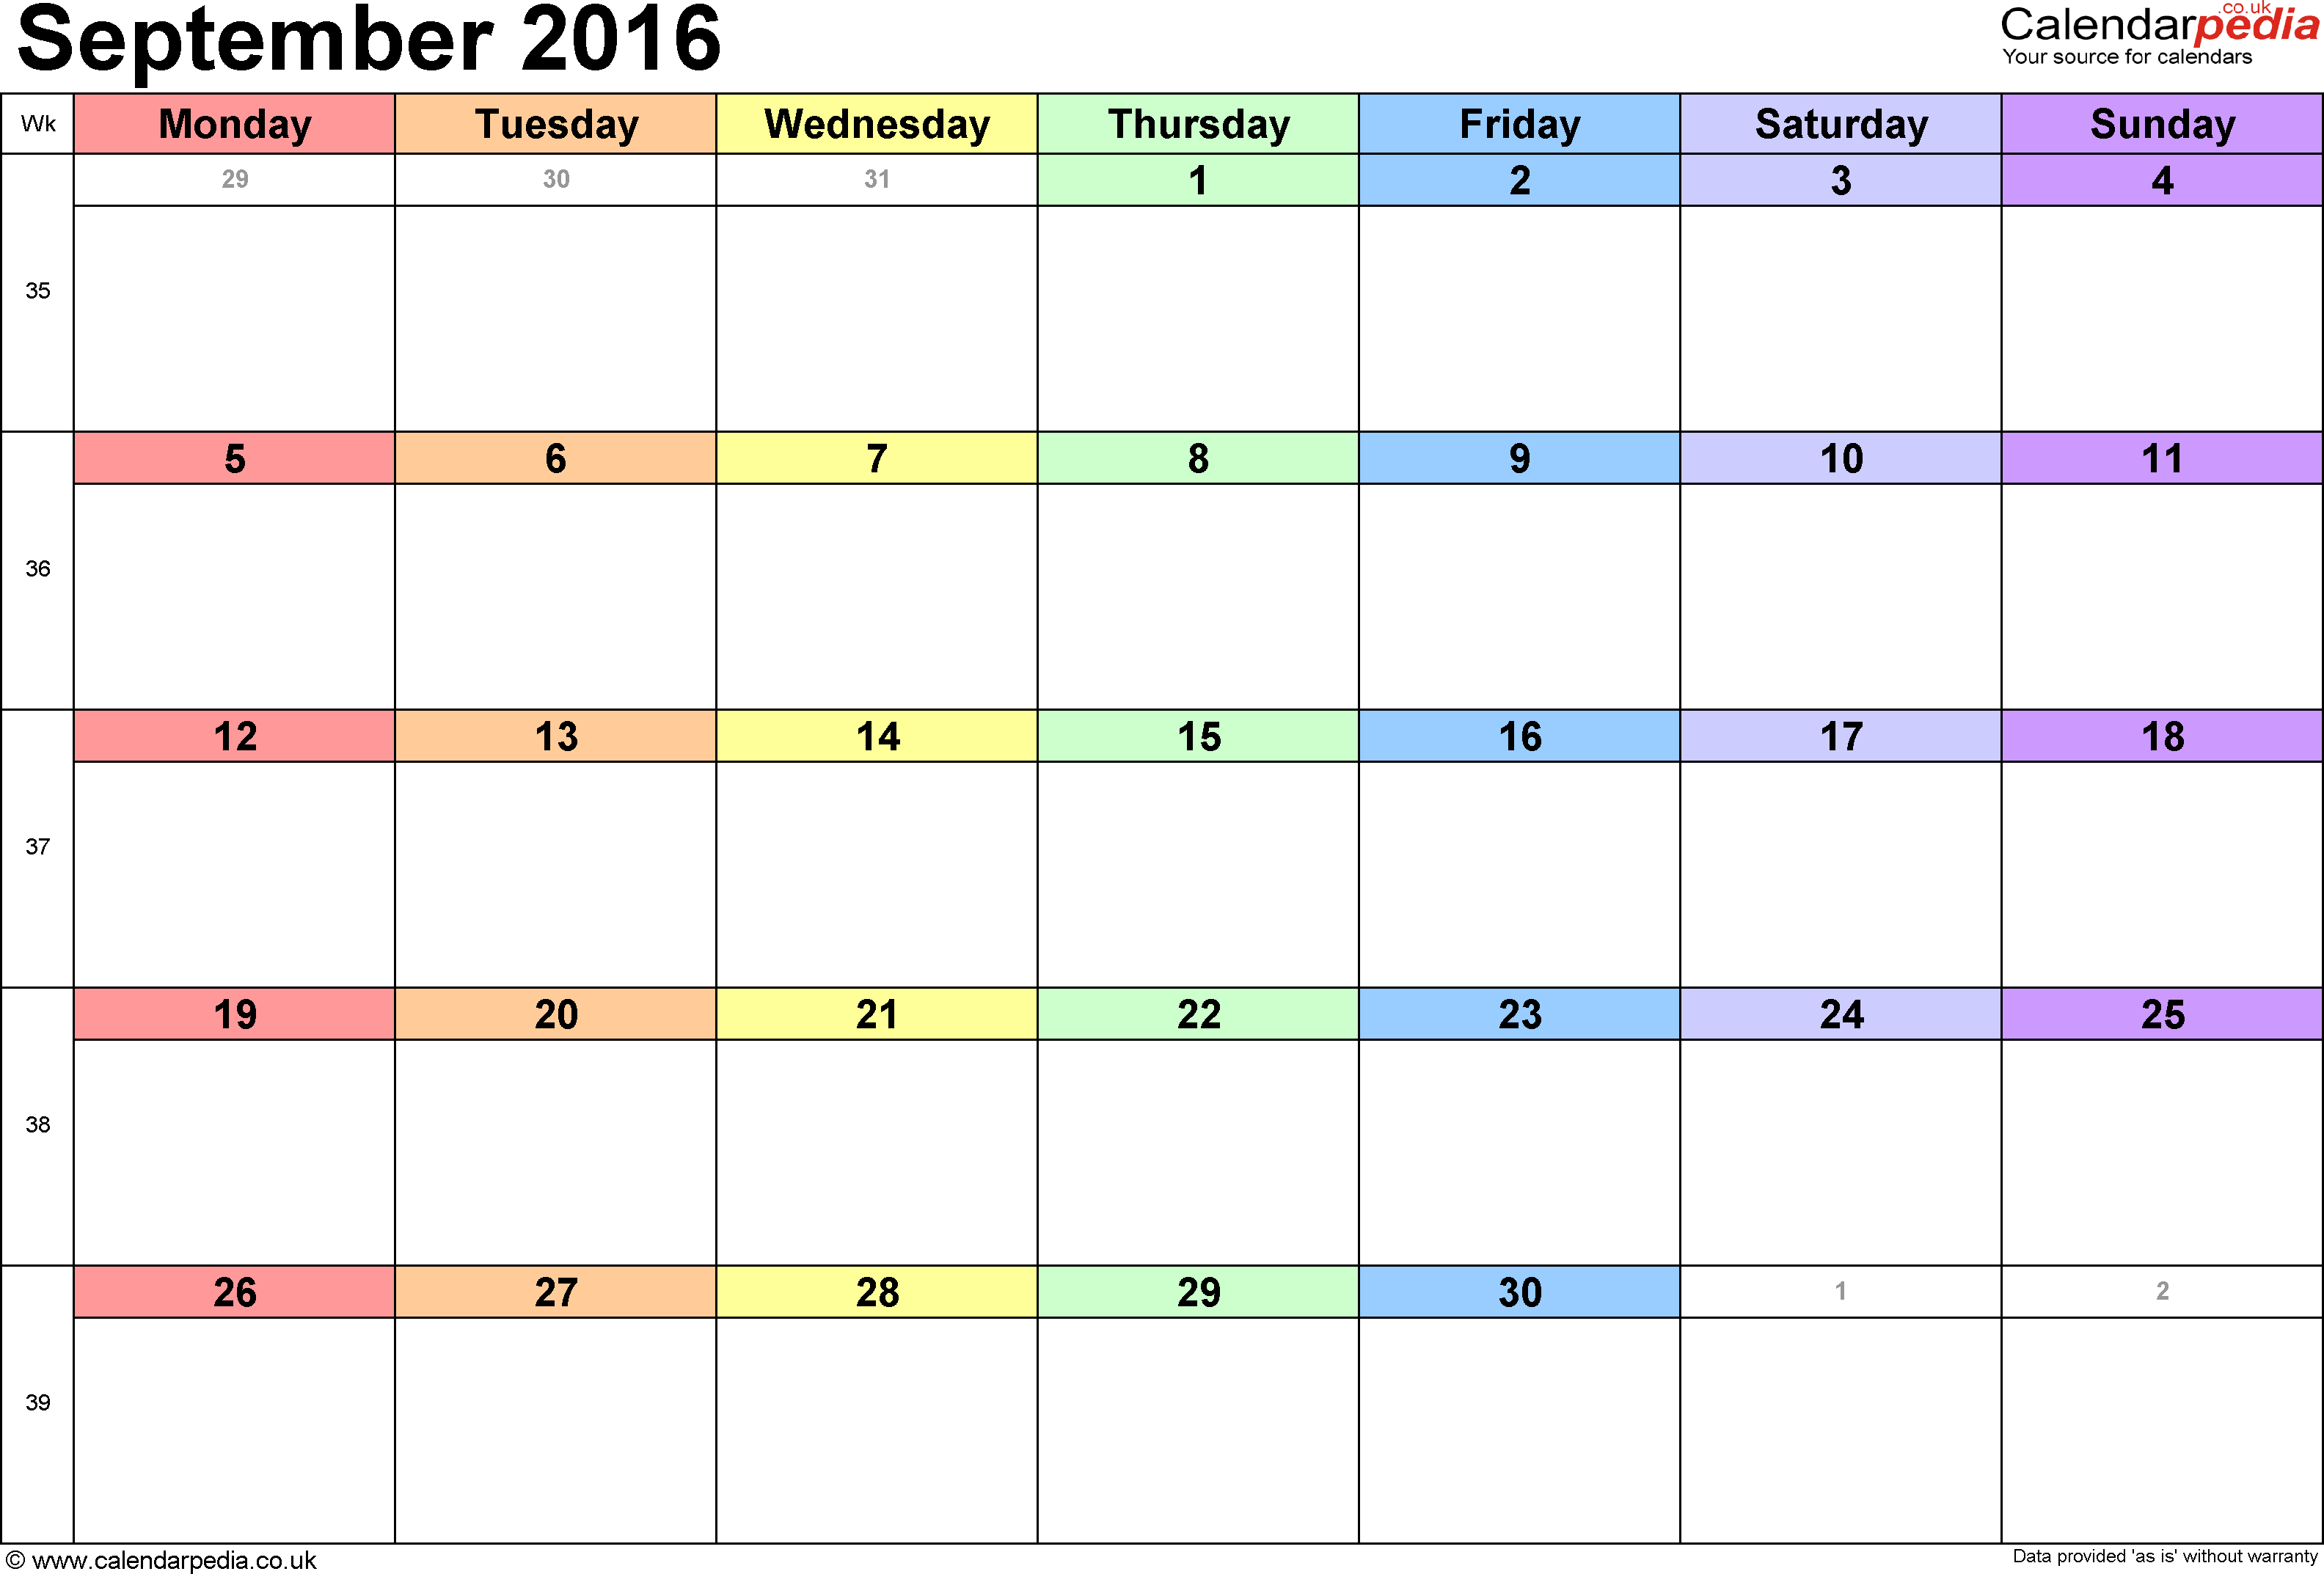 Calendar September 2016, landscape orientation, 1 page, with UK bank holidays and week numbers